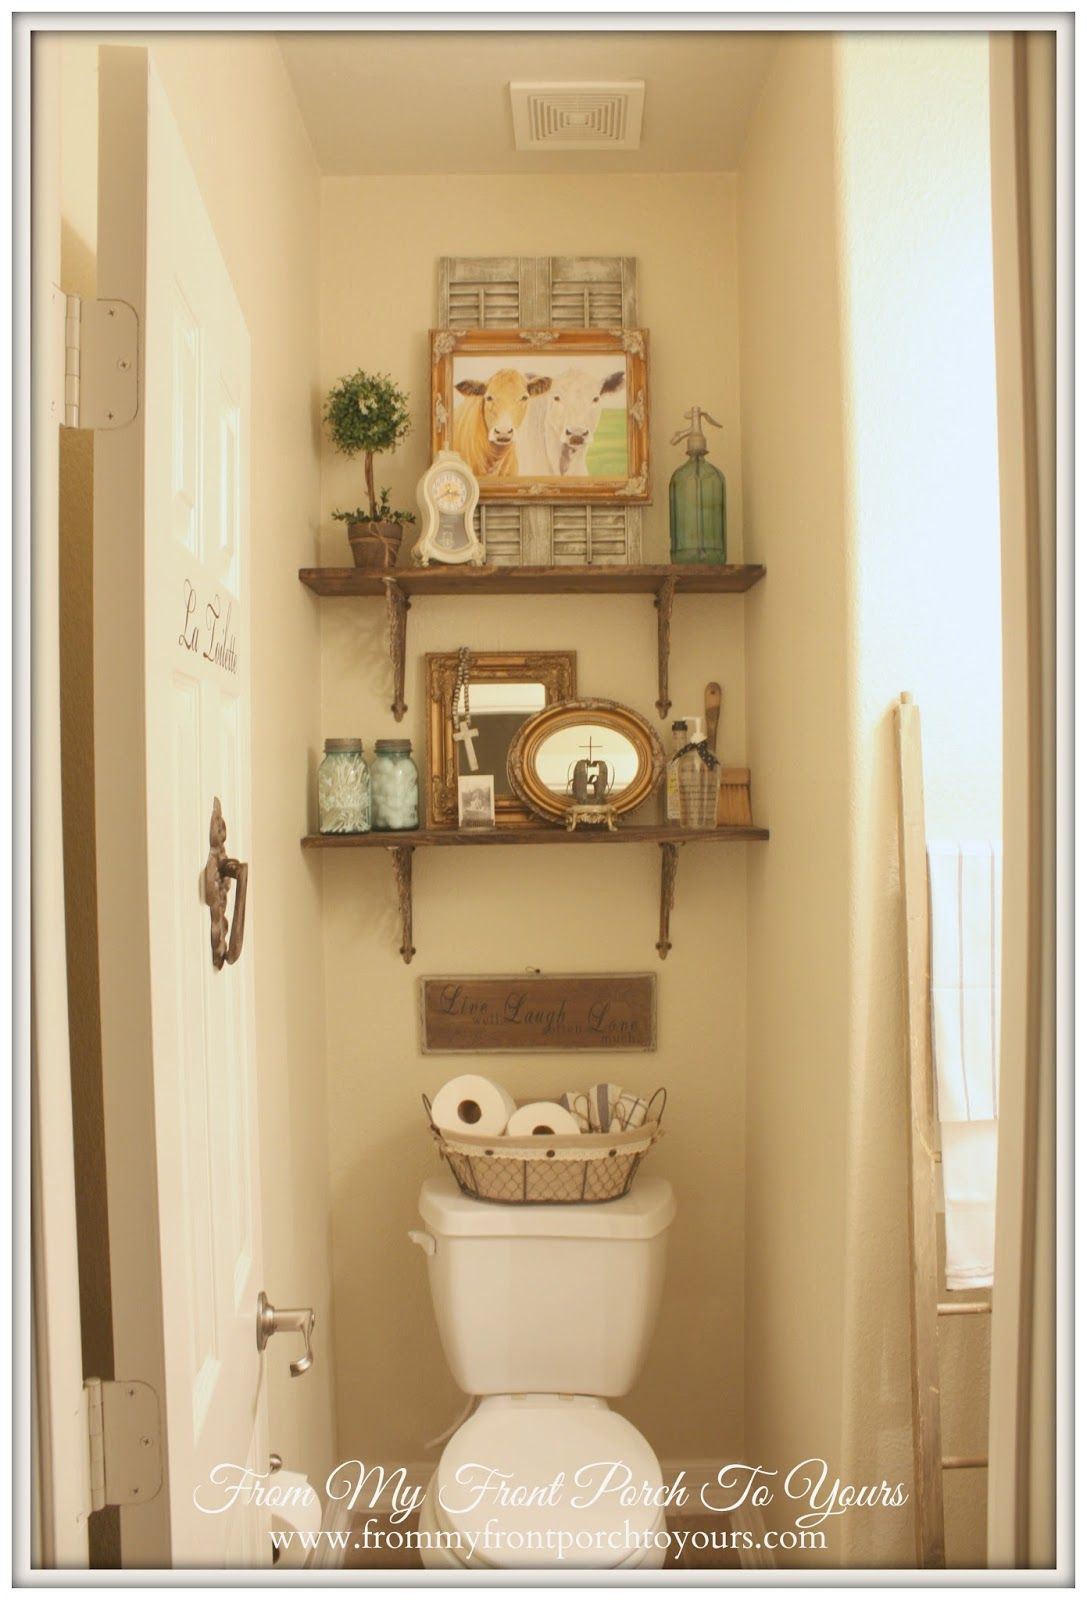 From My Front Porch to Yours - Home Tour | Shelves, Small bathroom ...